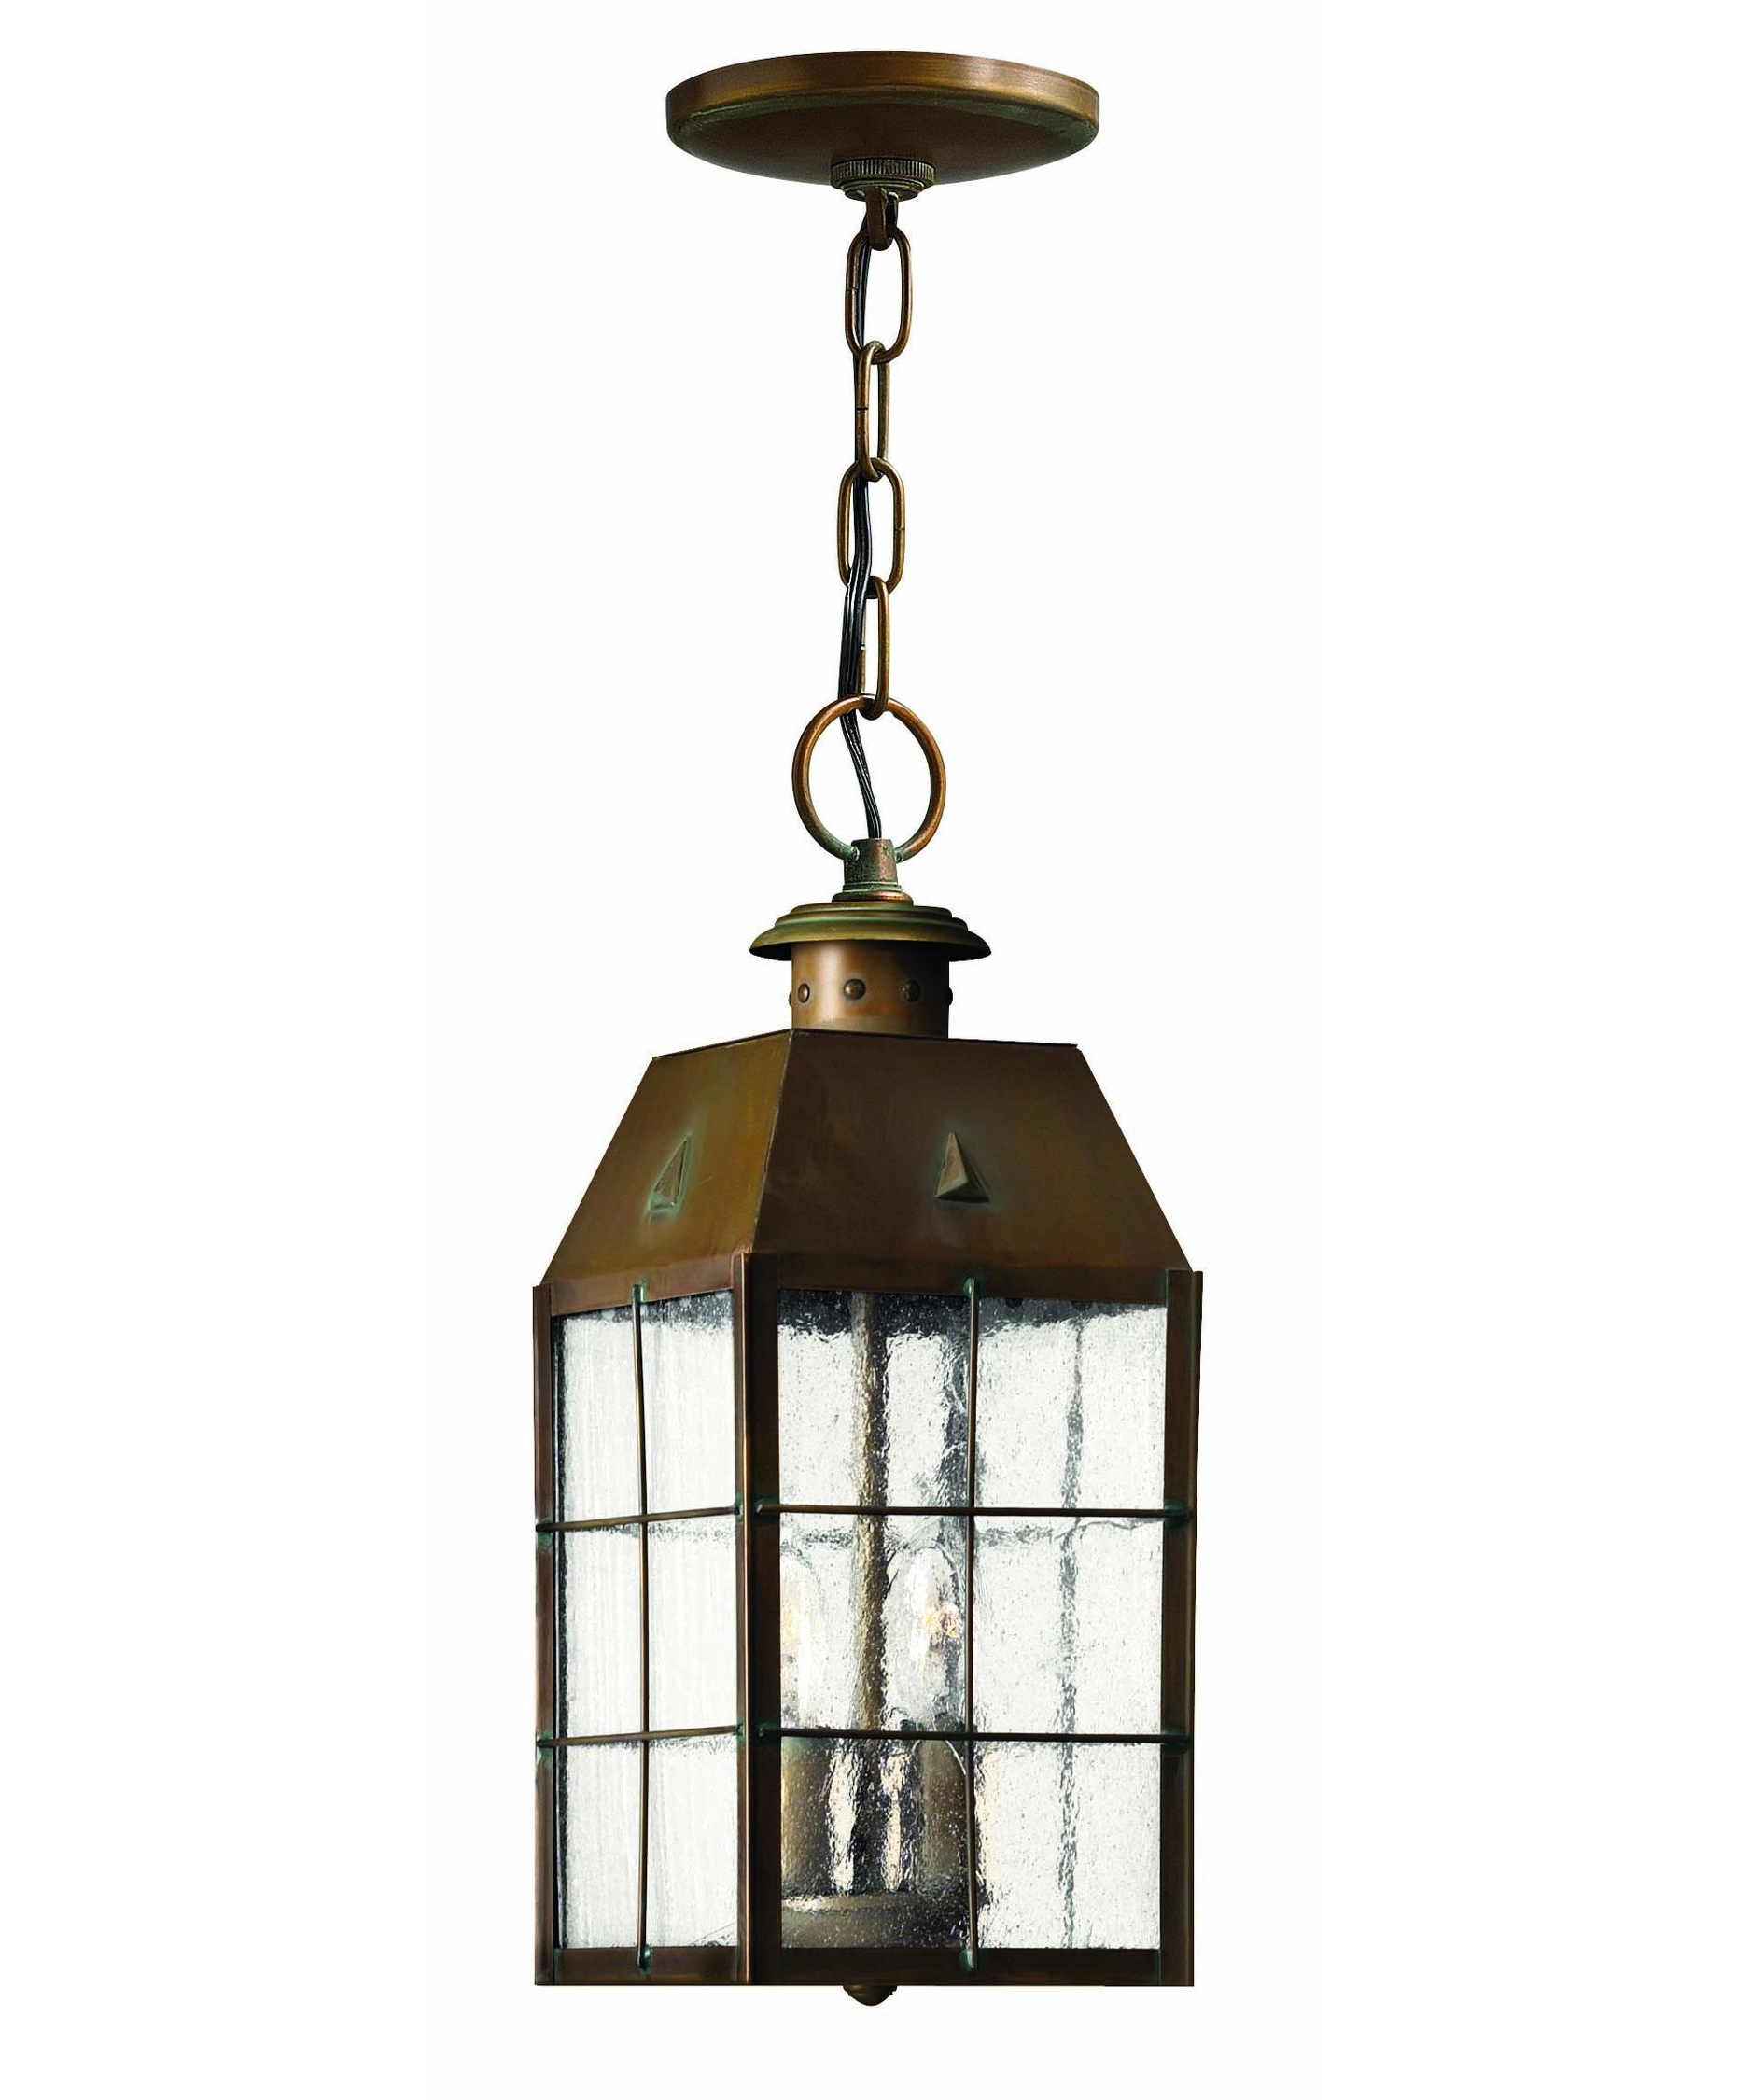 Hinkley Lighting 2372 Nantucket 6 Inch Wide 2 Light Outdoor Hanging Intended For Well Known Modern Latern Hinkley Lighting (View 18 of 20)